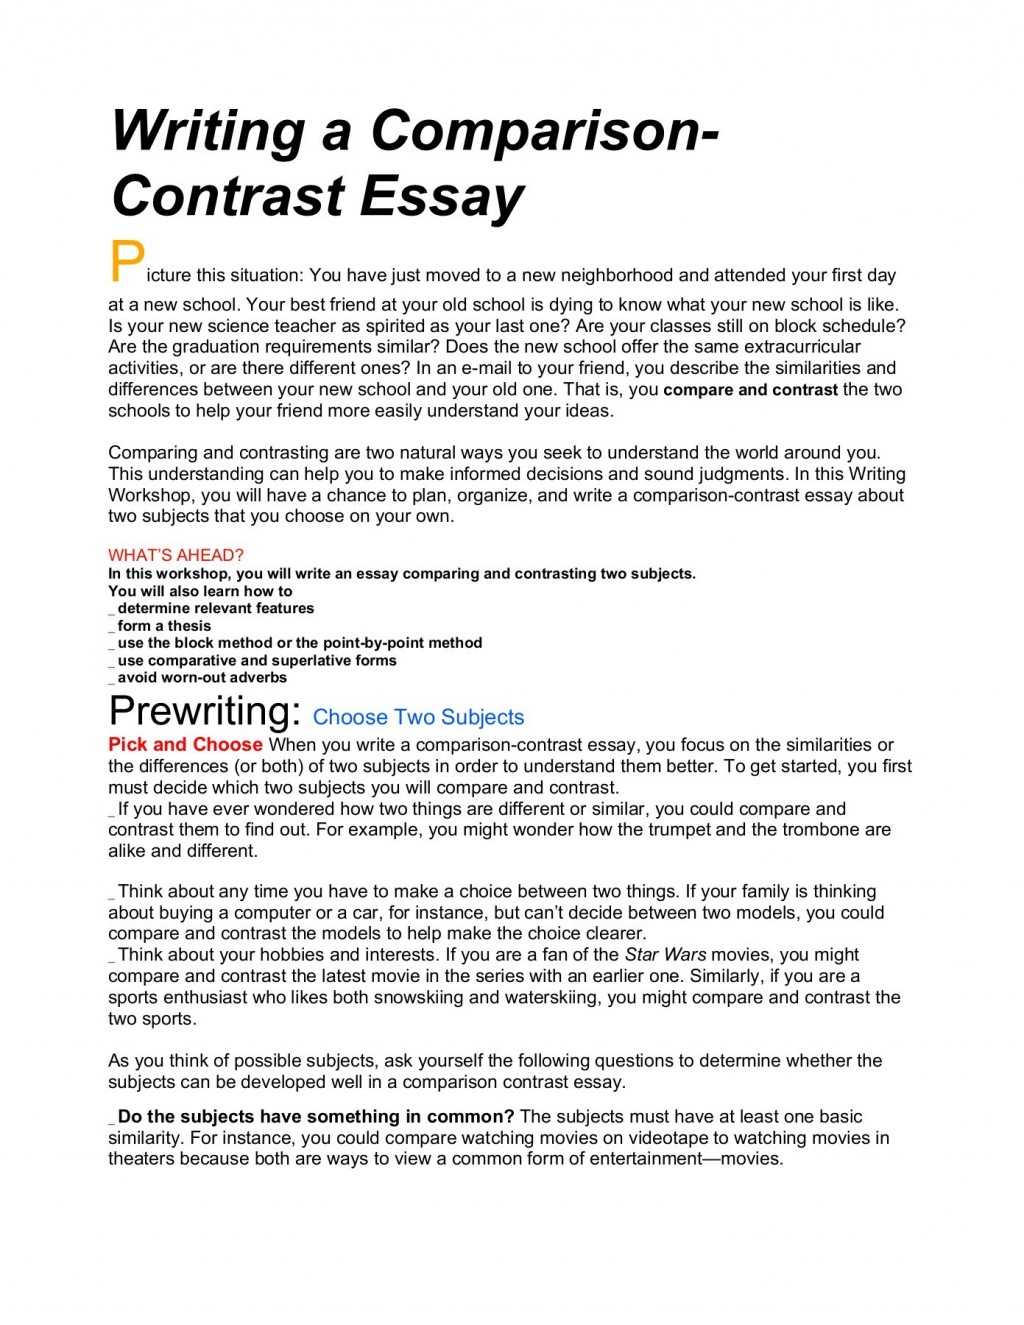 006 Essay Example Comparison And Awful Contrast Examples Point-by-point Large